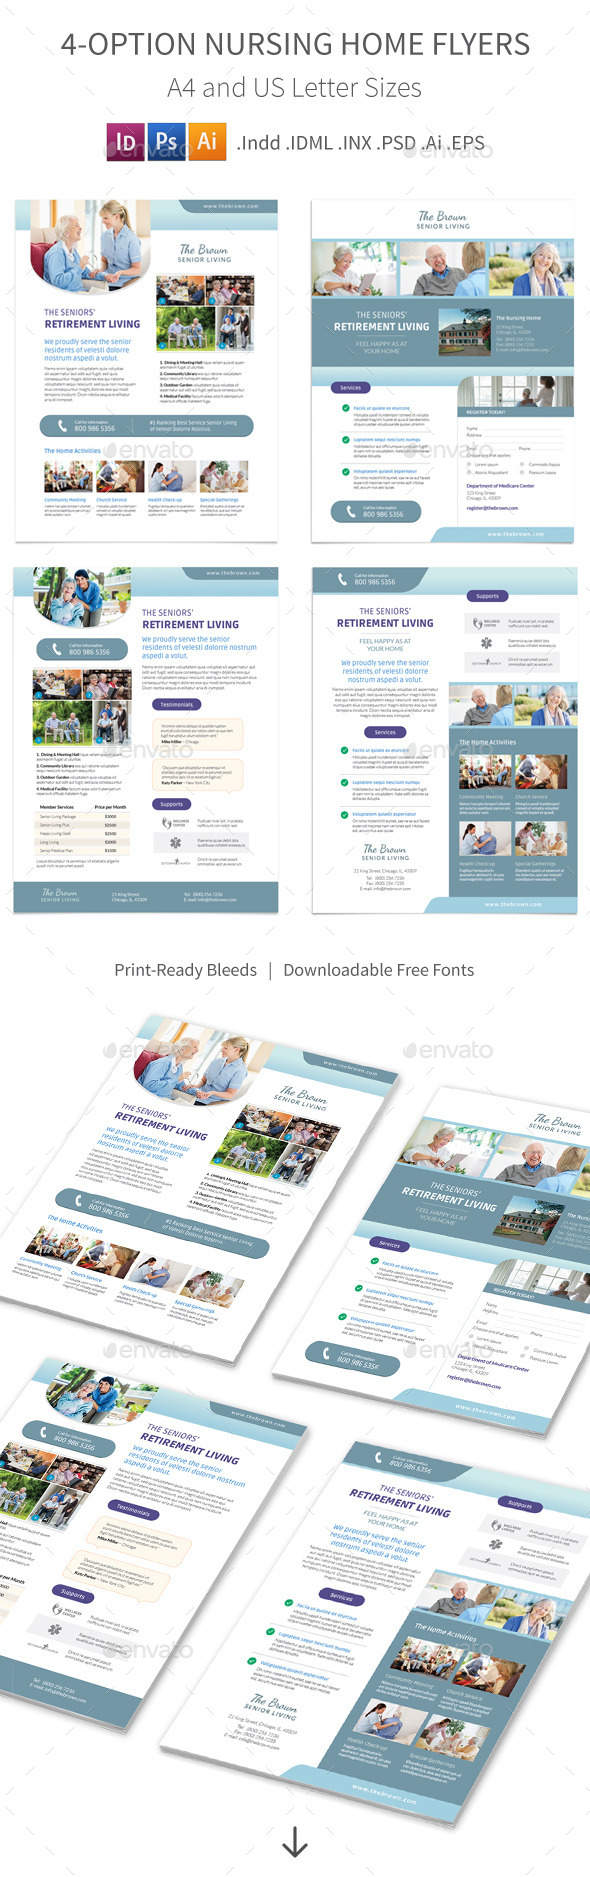 Nursing Home Flyers – 4 Options - Corporate Flyers